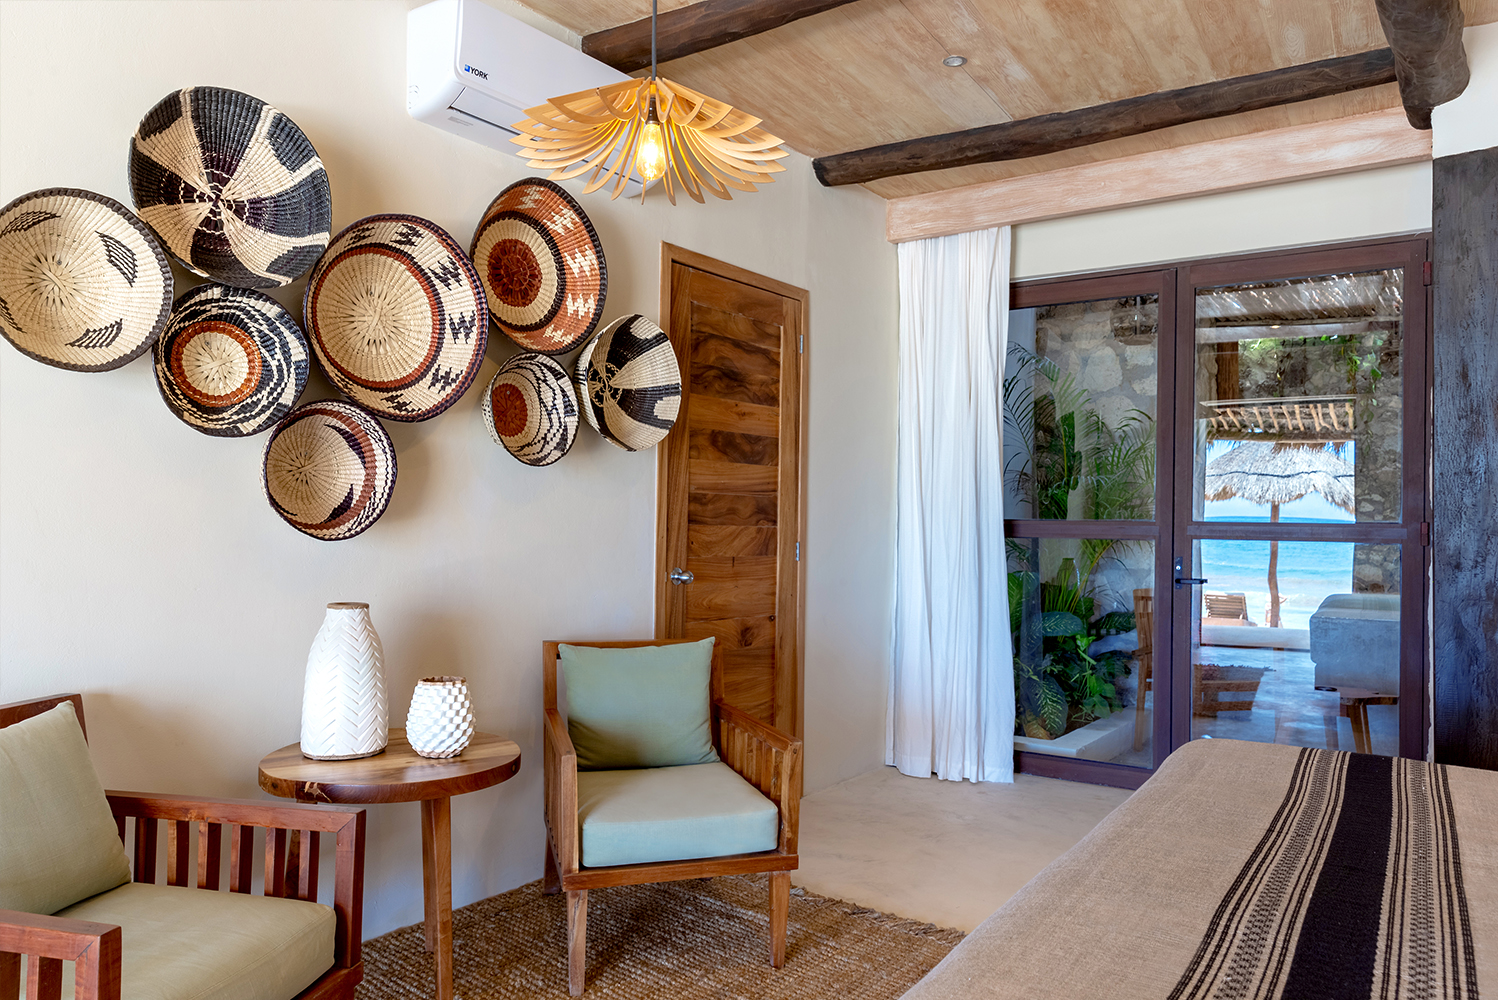 The new suites mix local Mayan stone, polished cement, tropical woods, natural Mexican handwoven fabrics and textiles, and a natural color palette.